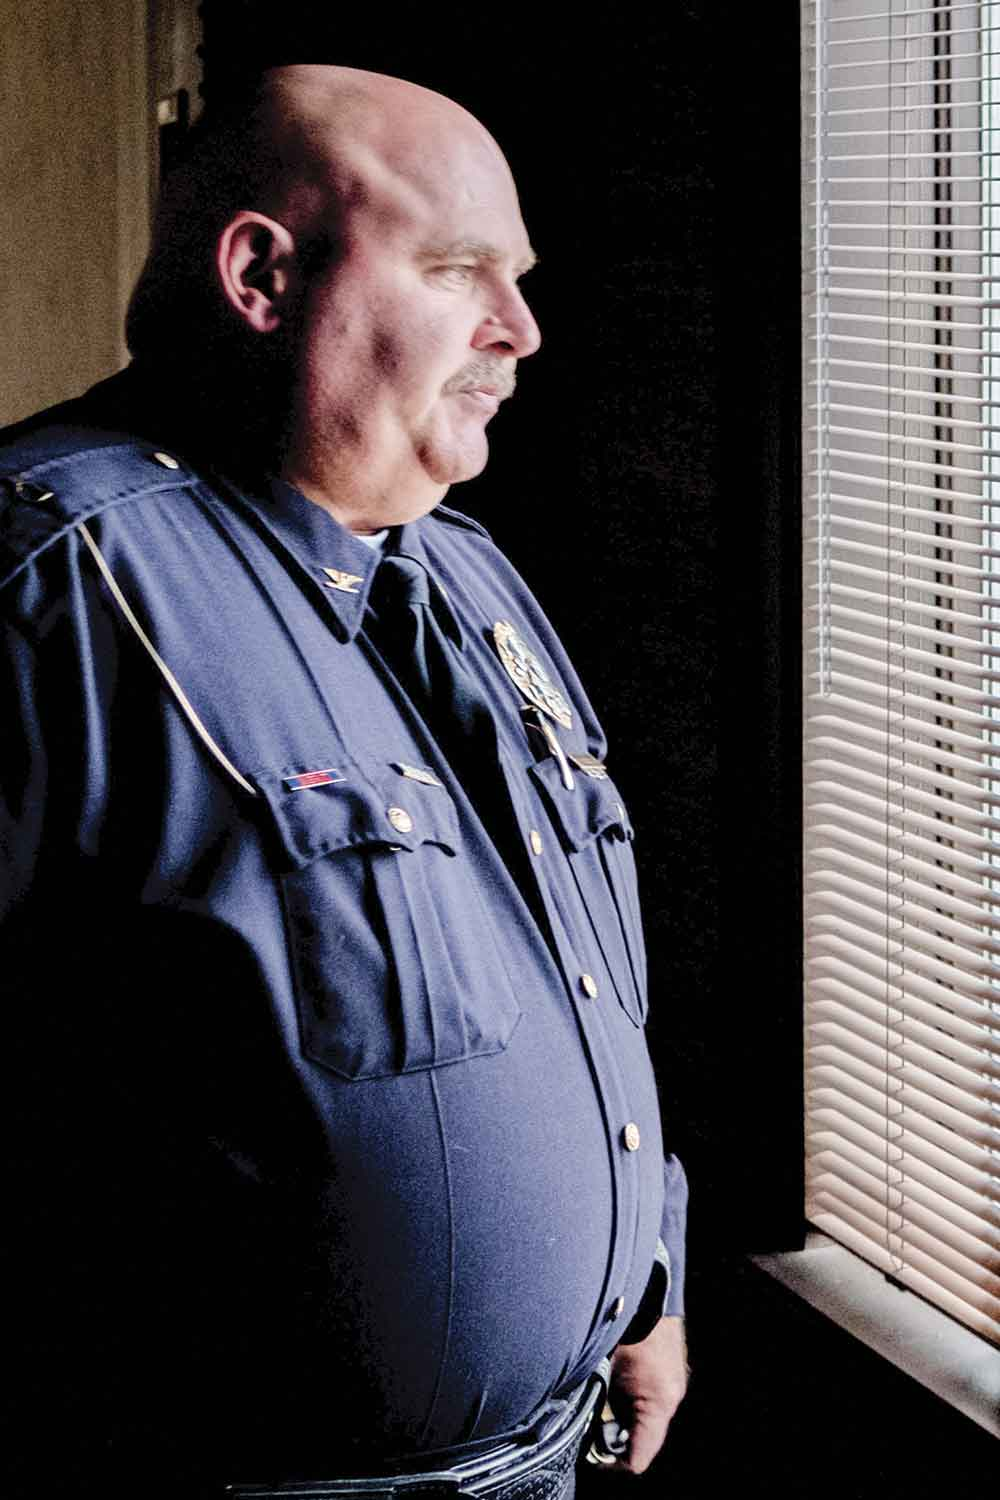 Mount Sterling Police Chief David Charles  set high expectations when he took over the department in 2011. Having served MSPD for 26 years, he is passionate about the community he serves and the men and women serving in his ranks. (Photo by Jim Robertson)